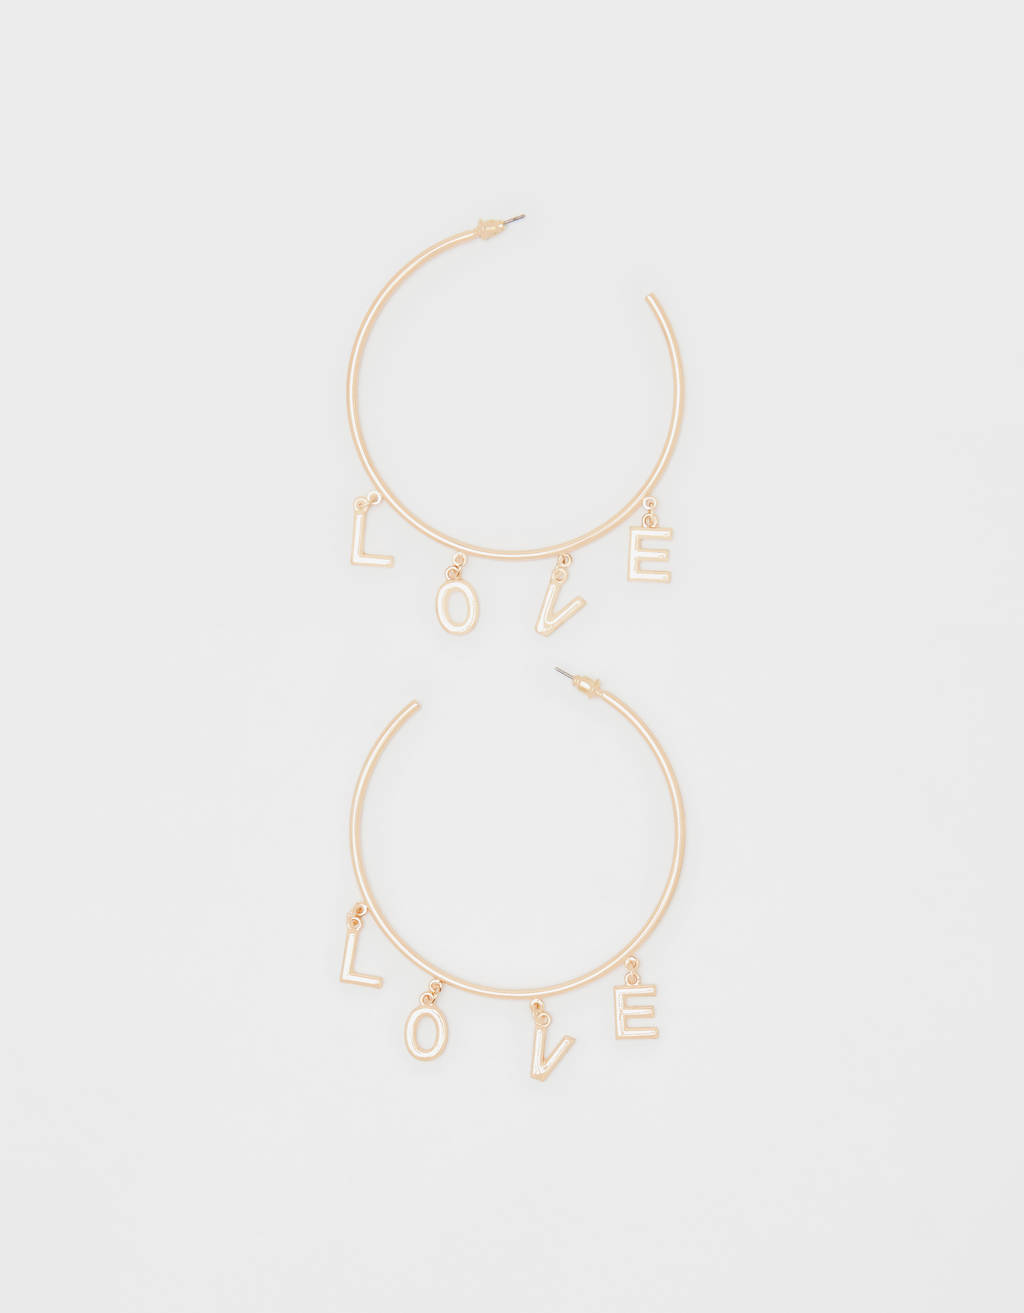 'Love' hoop earrings